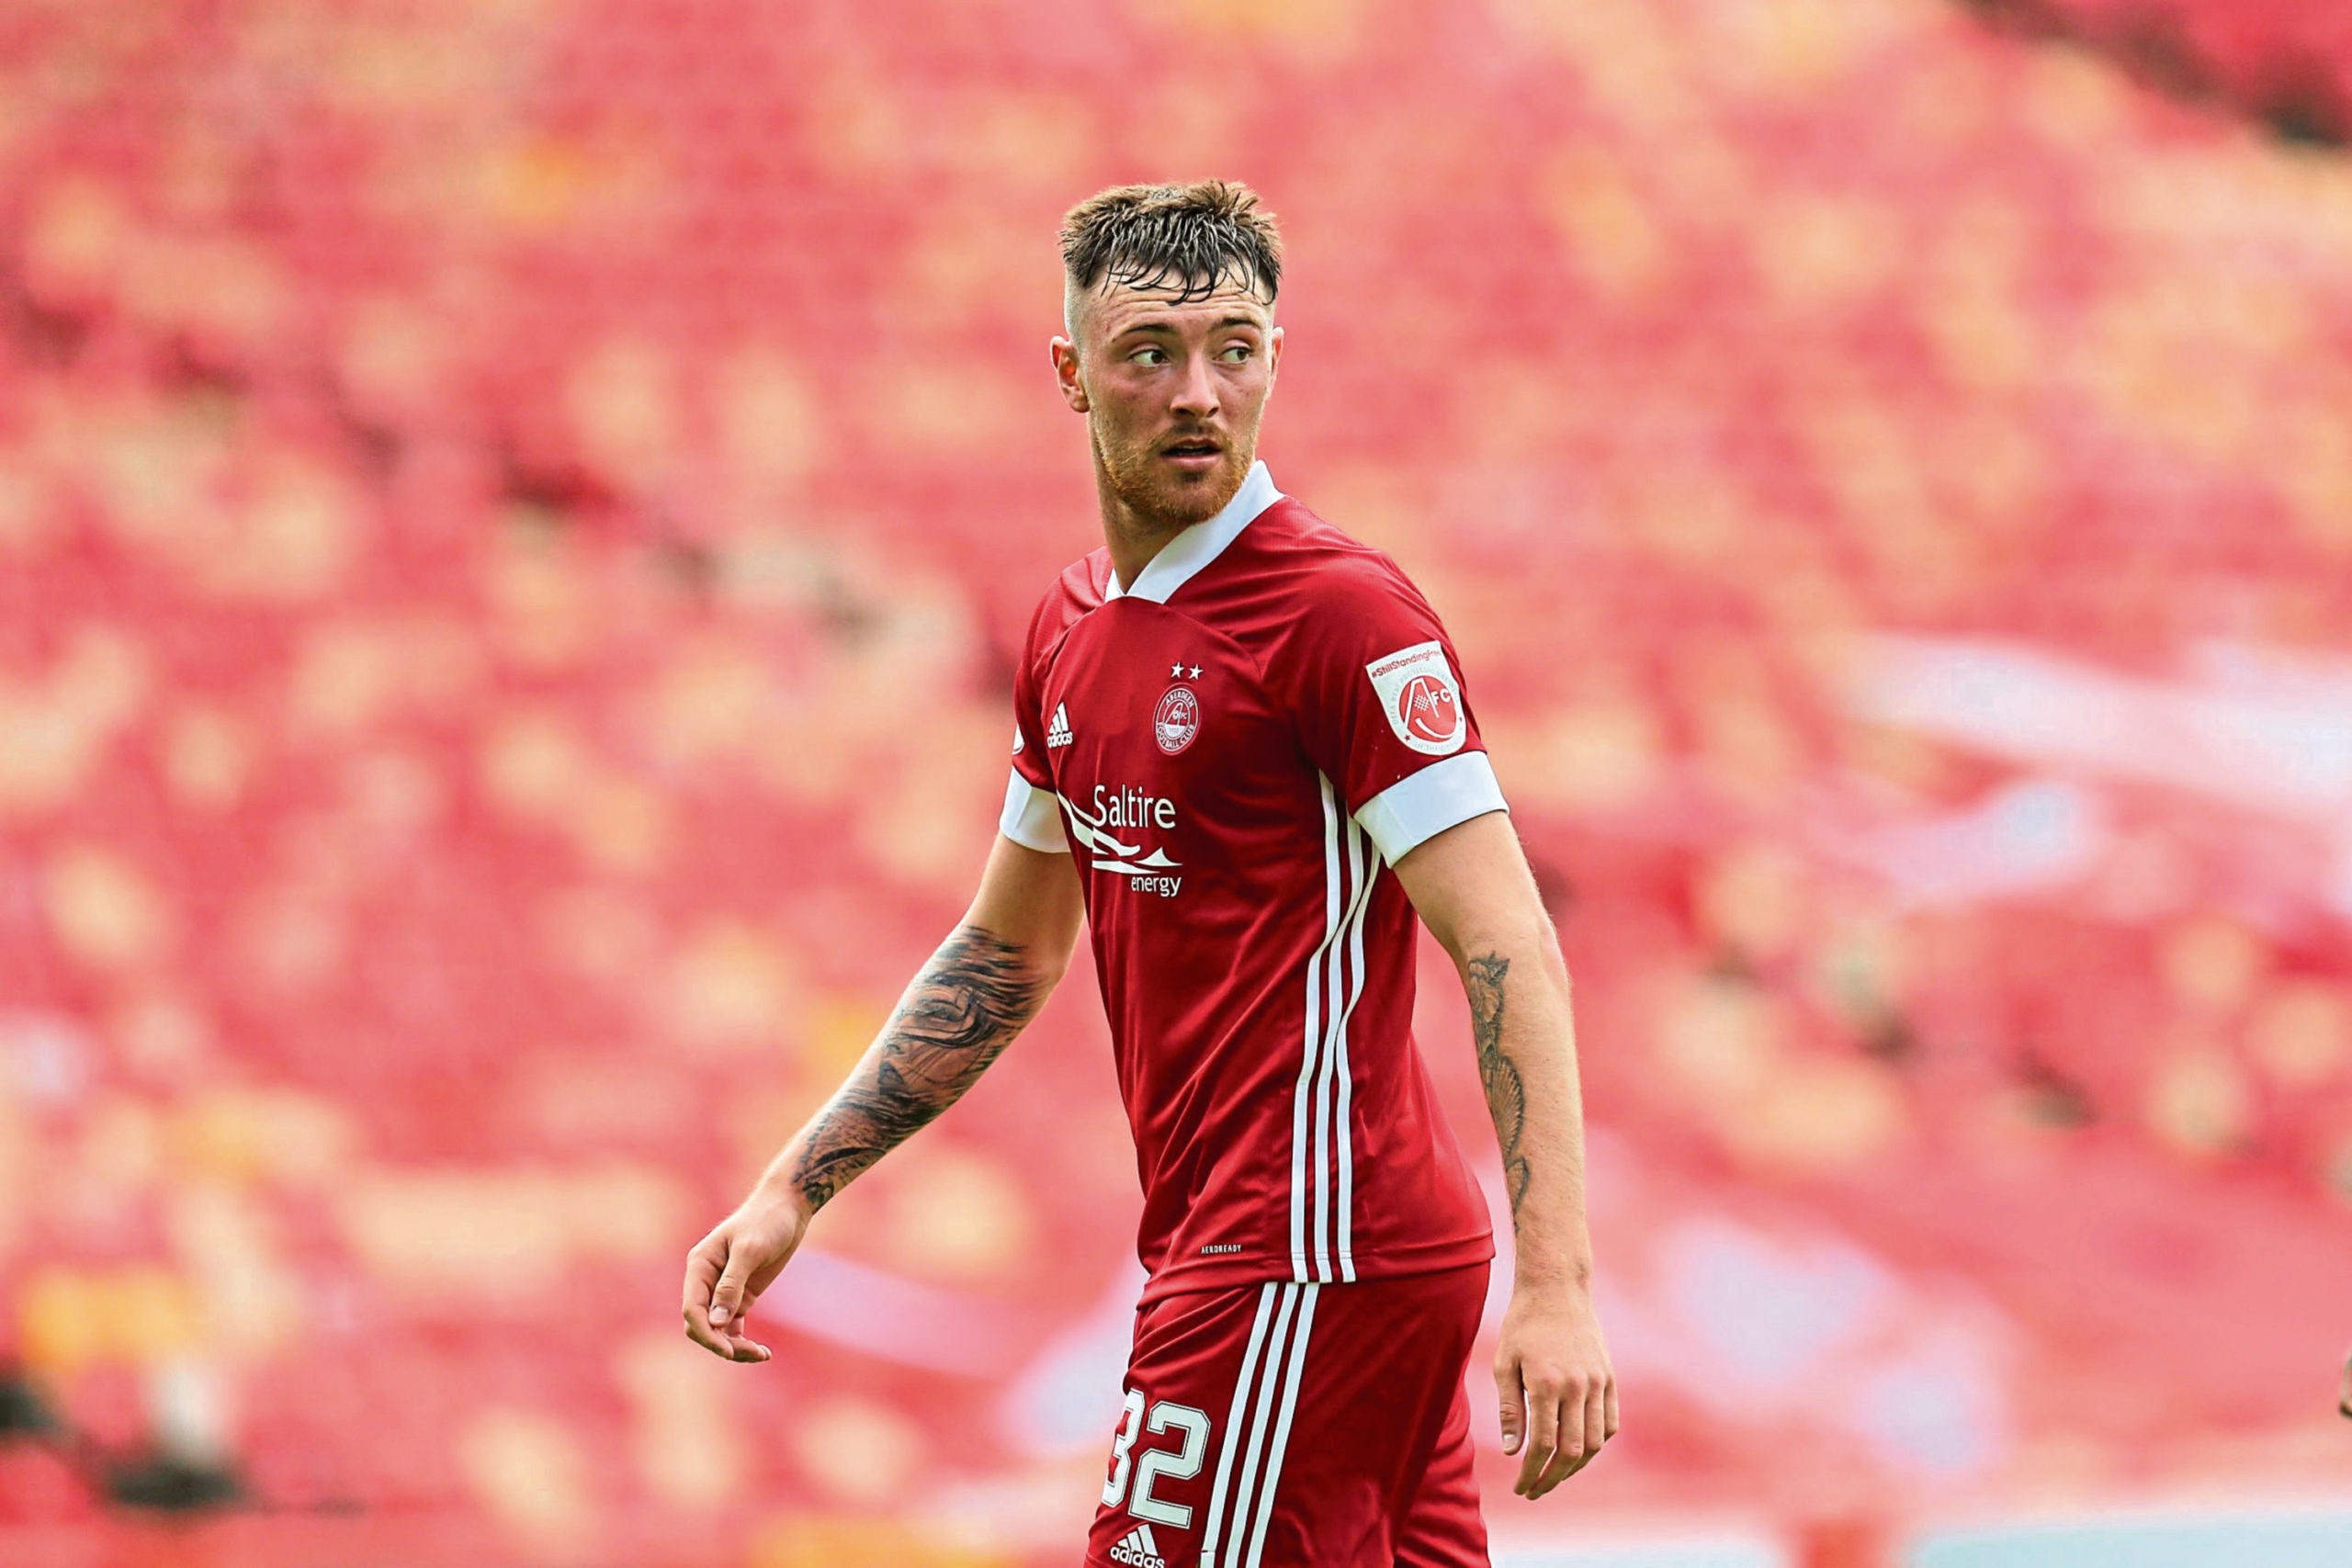 Ryan Edmondson has returned to Pittodrie after injury.